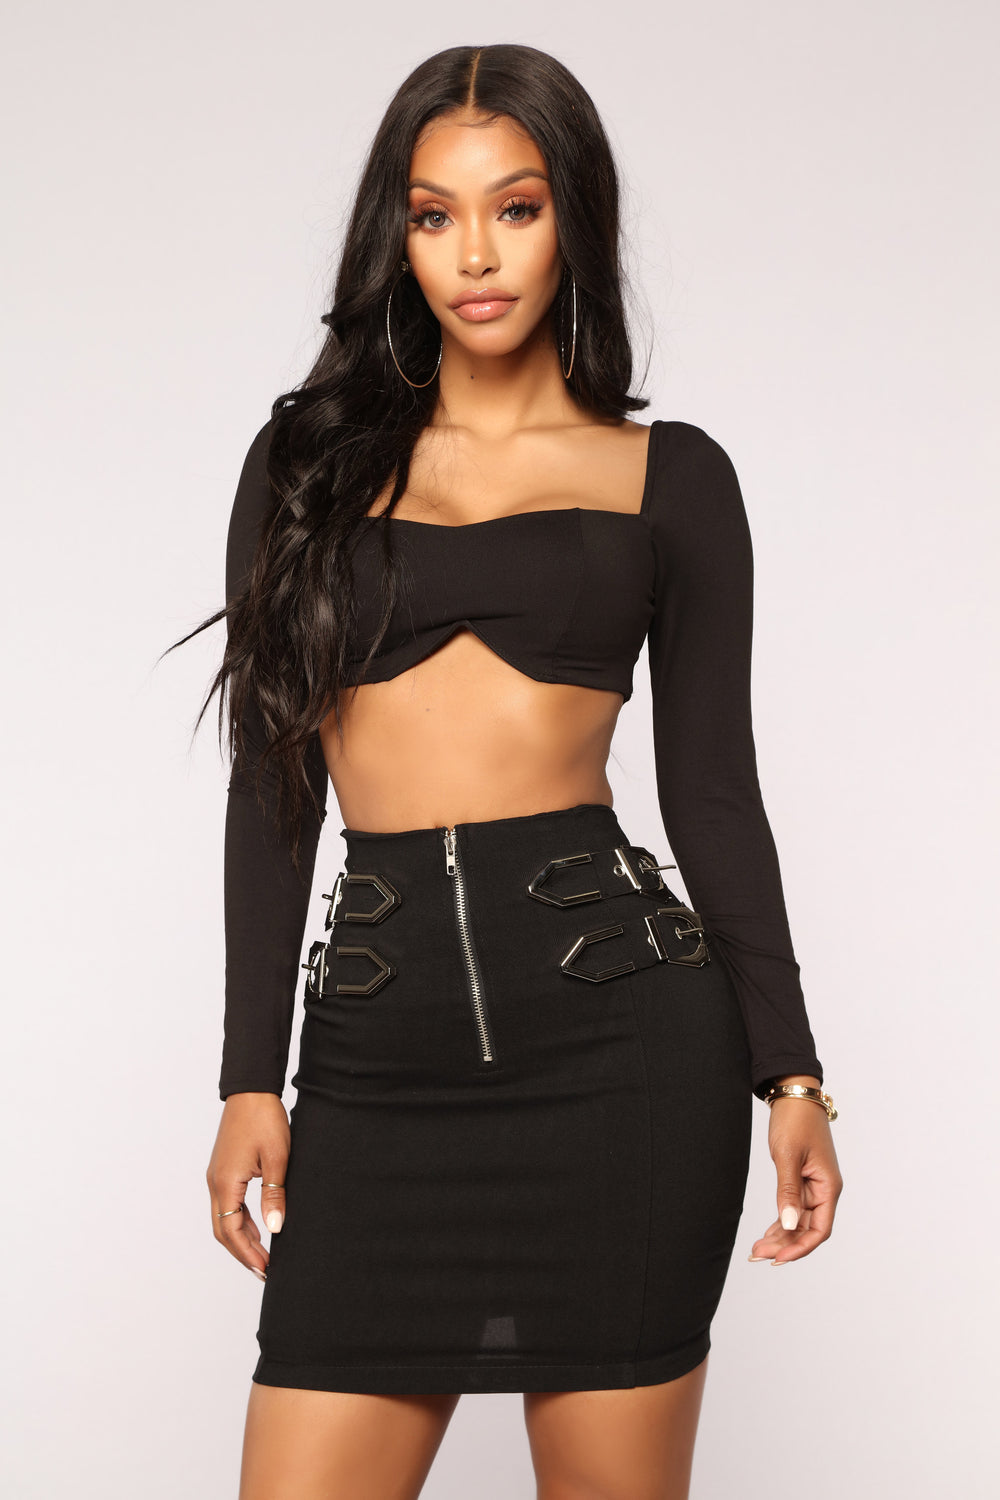 Buckle Up Buttercup Skirt - Black